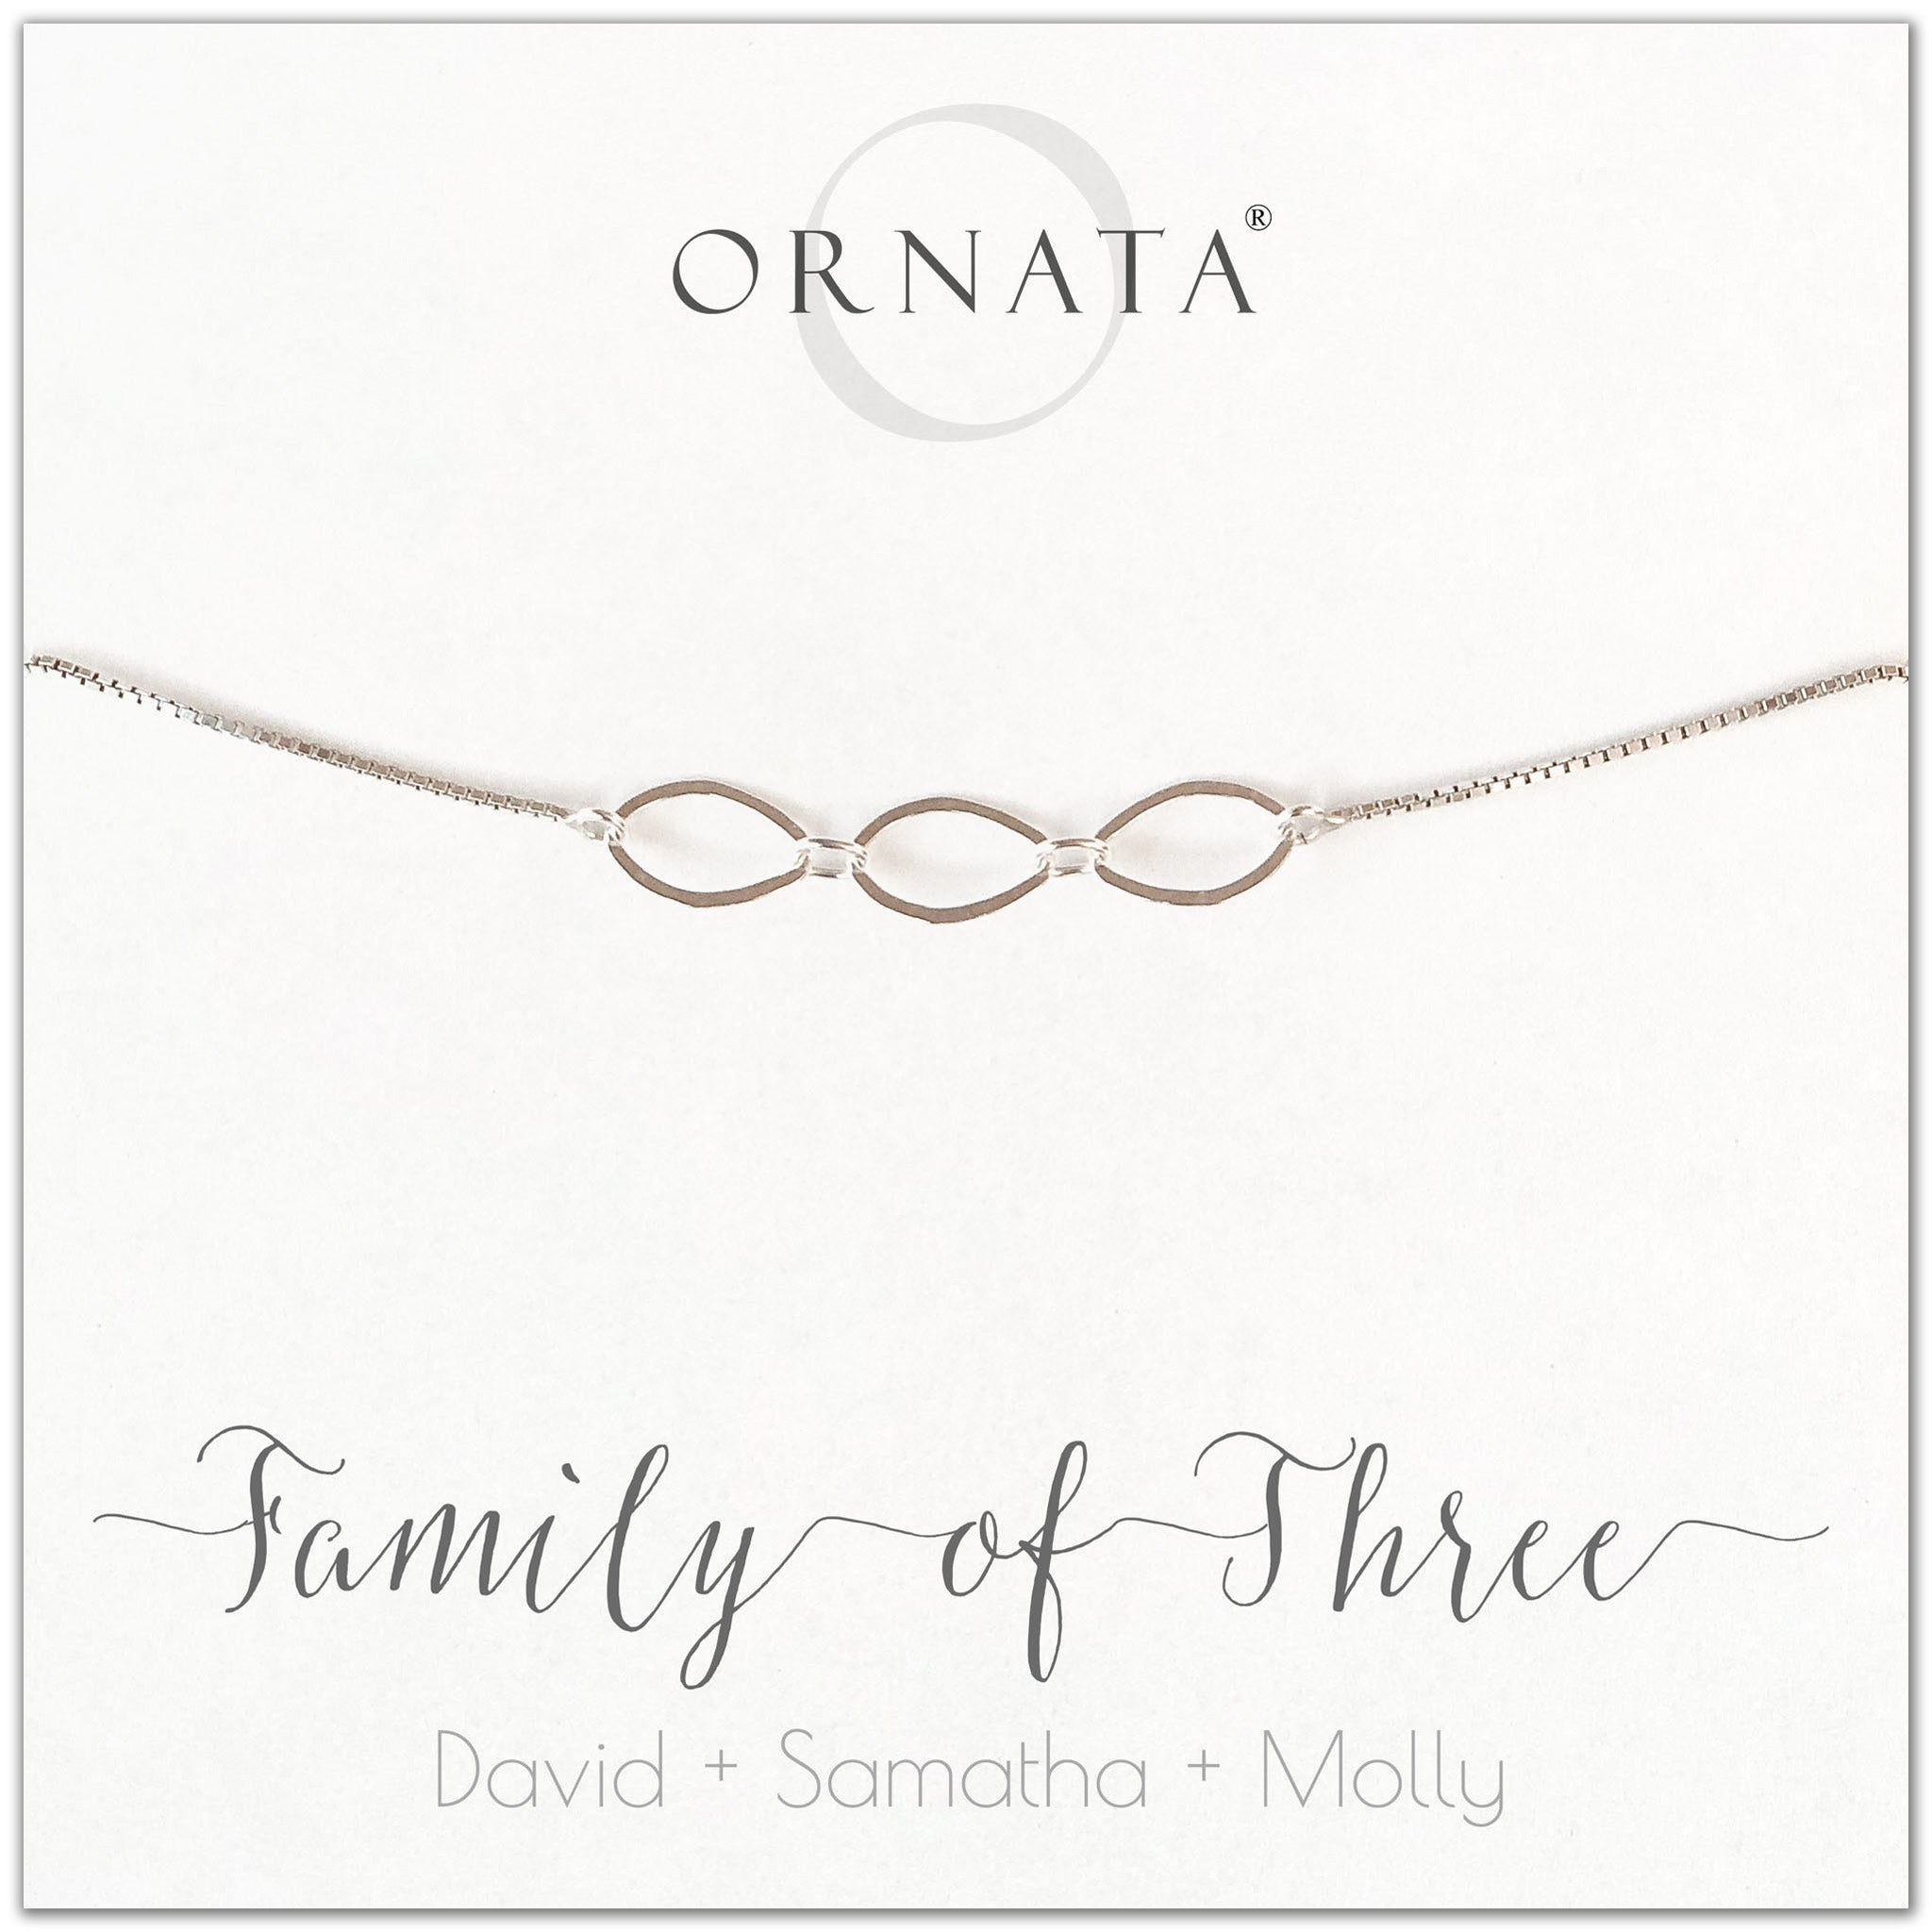 Family of three personalized sterling silver bolo bracelet. Our custom bracelets make good gifts for new families, mothers, and newlyweds. Great bridal shower gift, wedding gift, or baby shower gift. Also good mother's day gift.